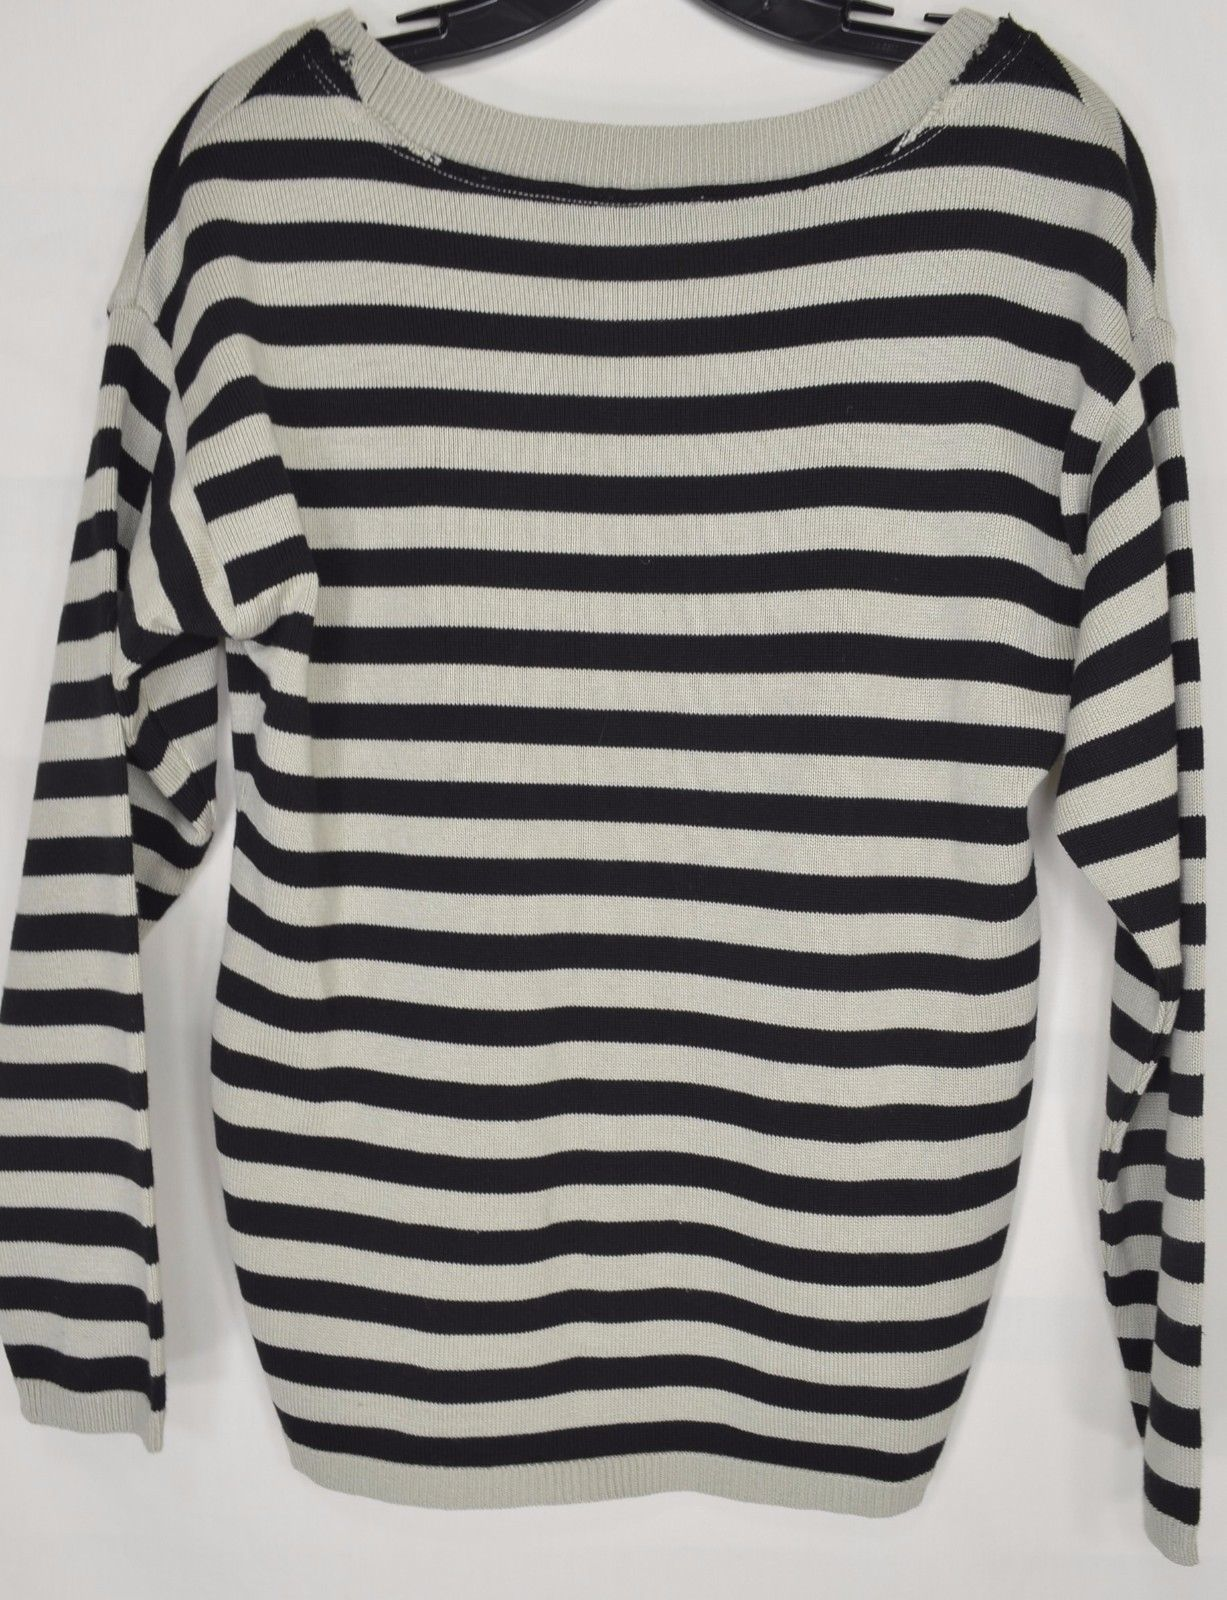 1 Tricotto sweater SZ S black taupe/beige striped scoop neck lace heart bling